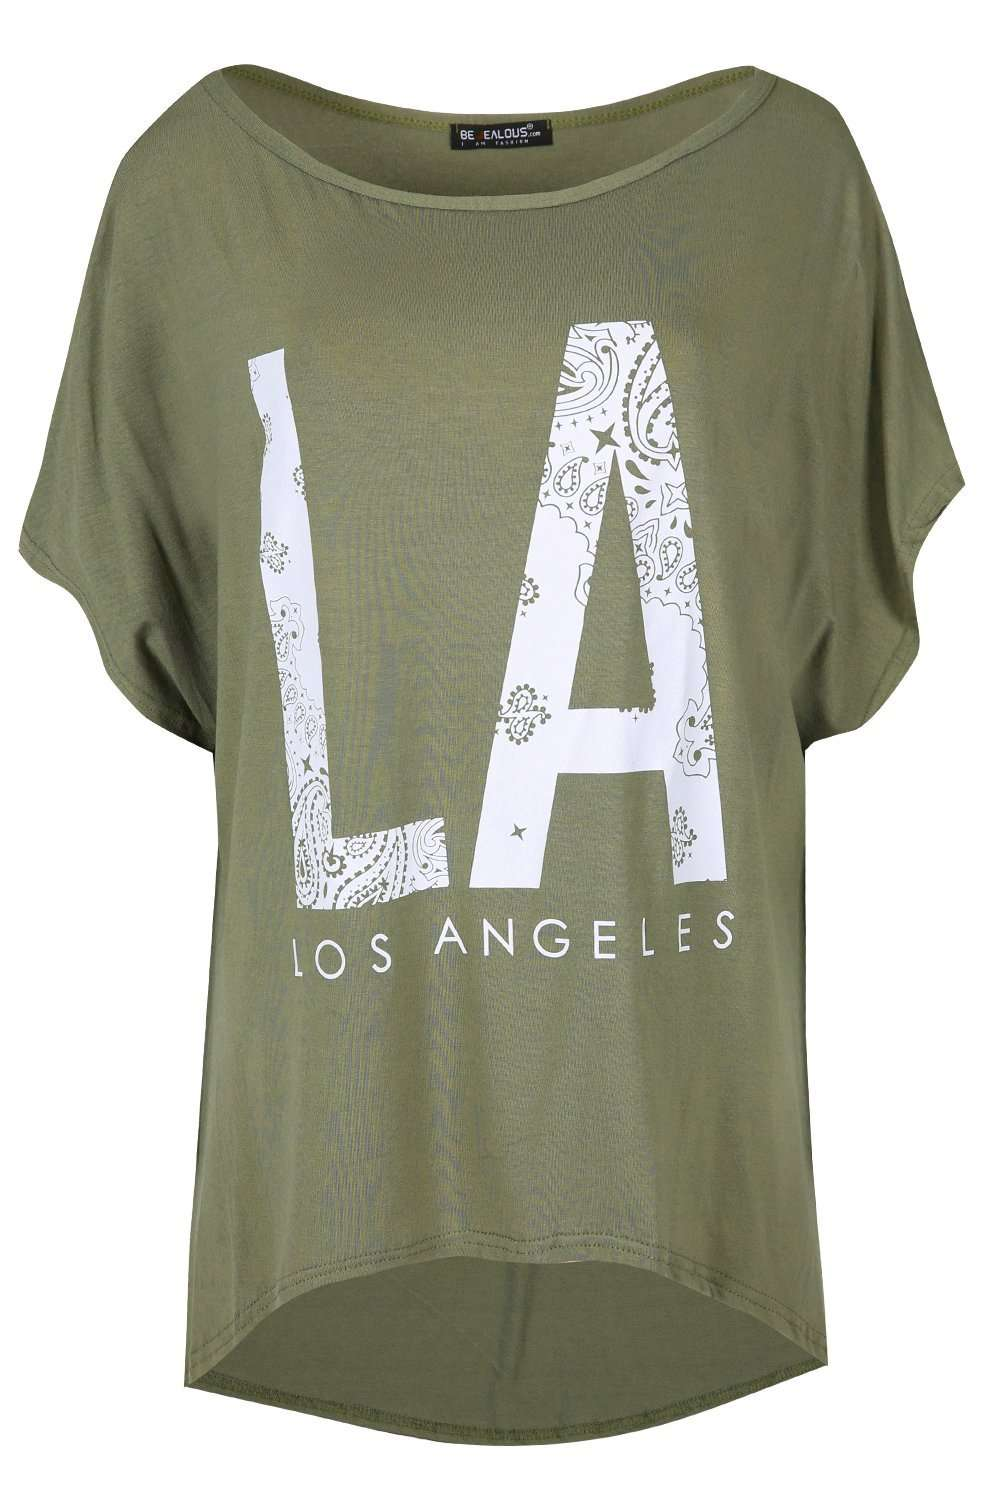 Orla Plus Los Angeles Slogan Print Tshirt - bejealous-com